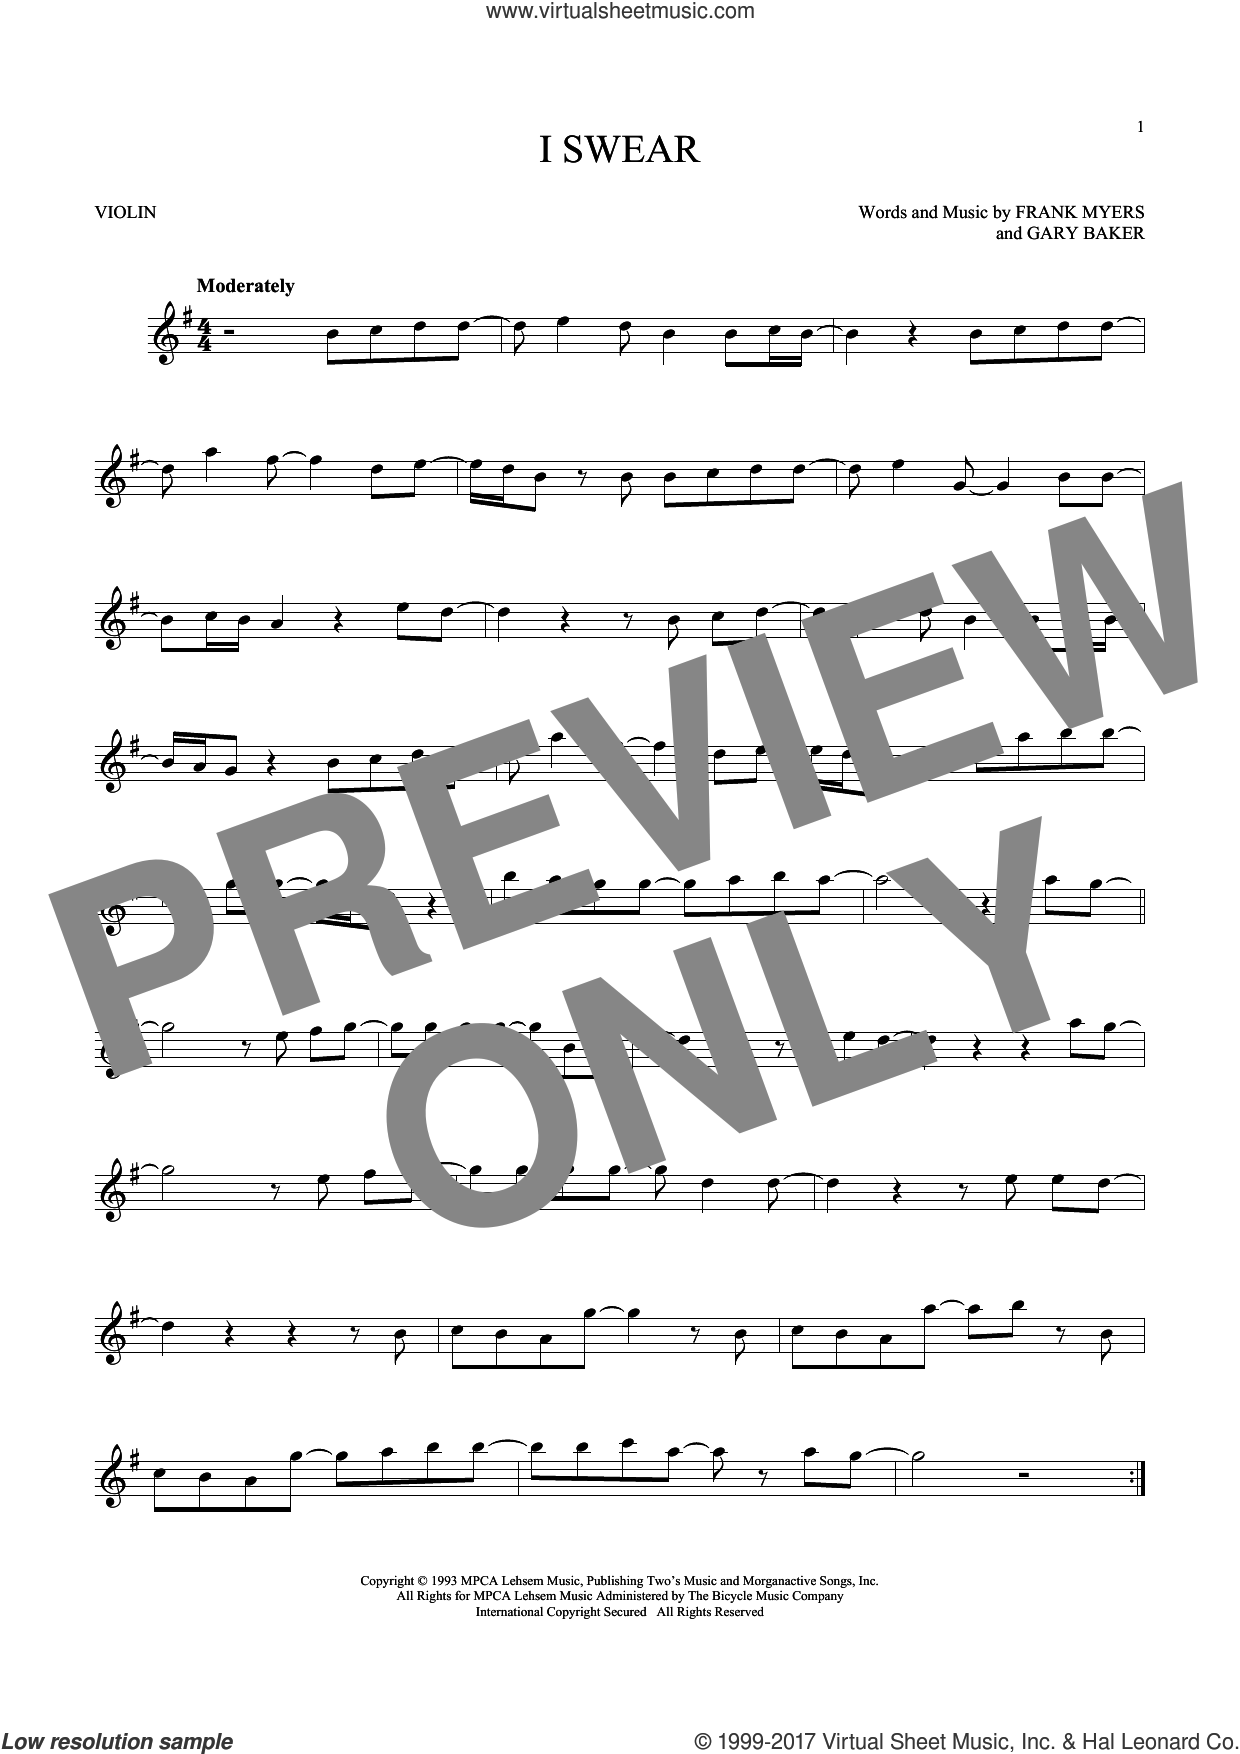 I Swear sheet music for violin solo by All-4-One, Frank Myers and Gary Baker, intermediate skill level